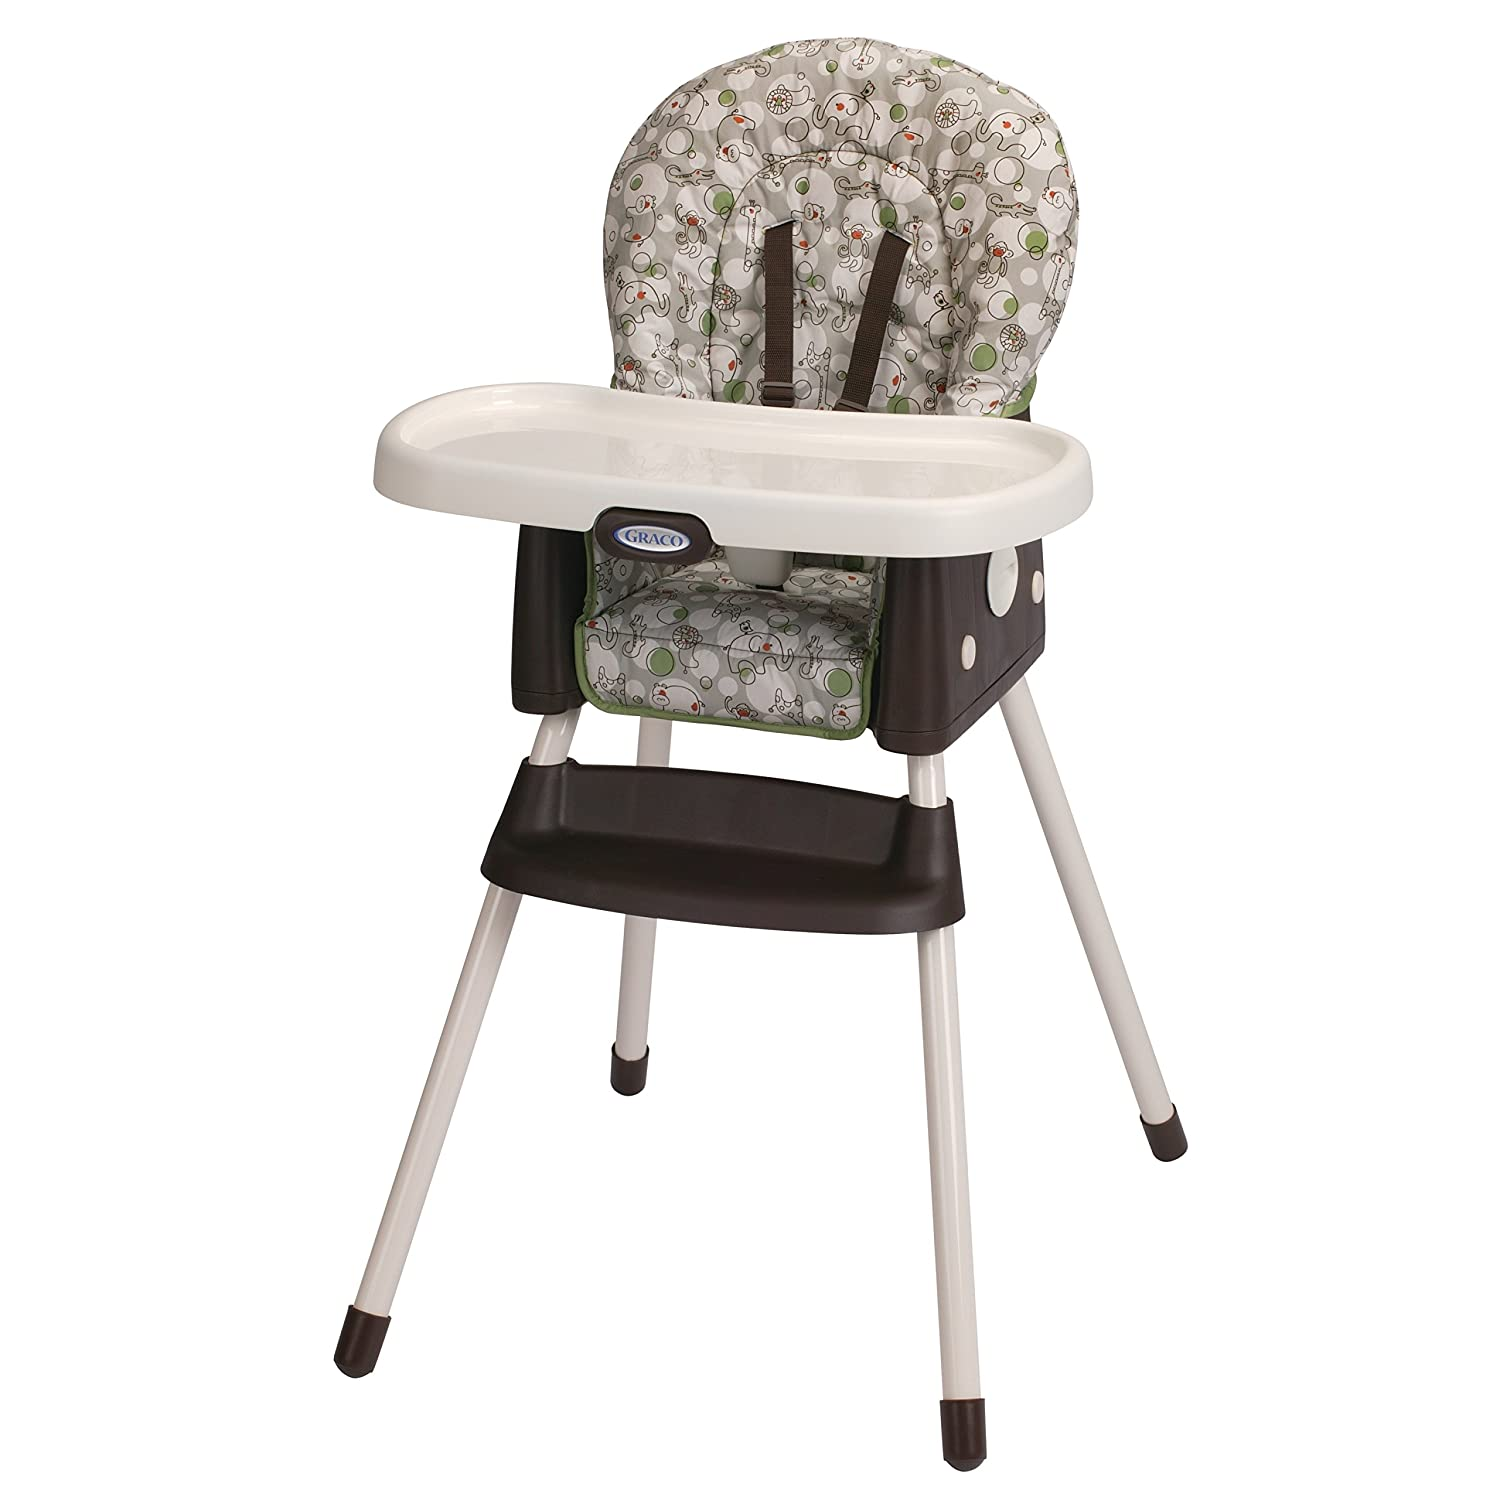 Baby eating chair attached to table - Graco Simpleswitch Portable High Chair And Booster